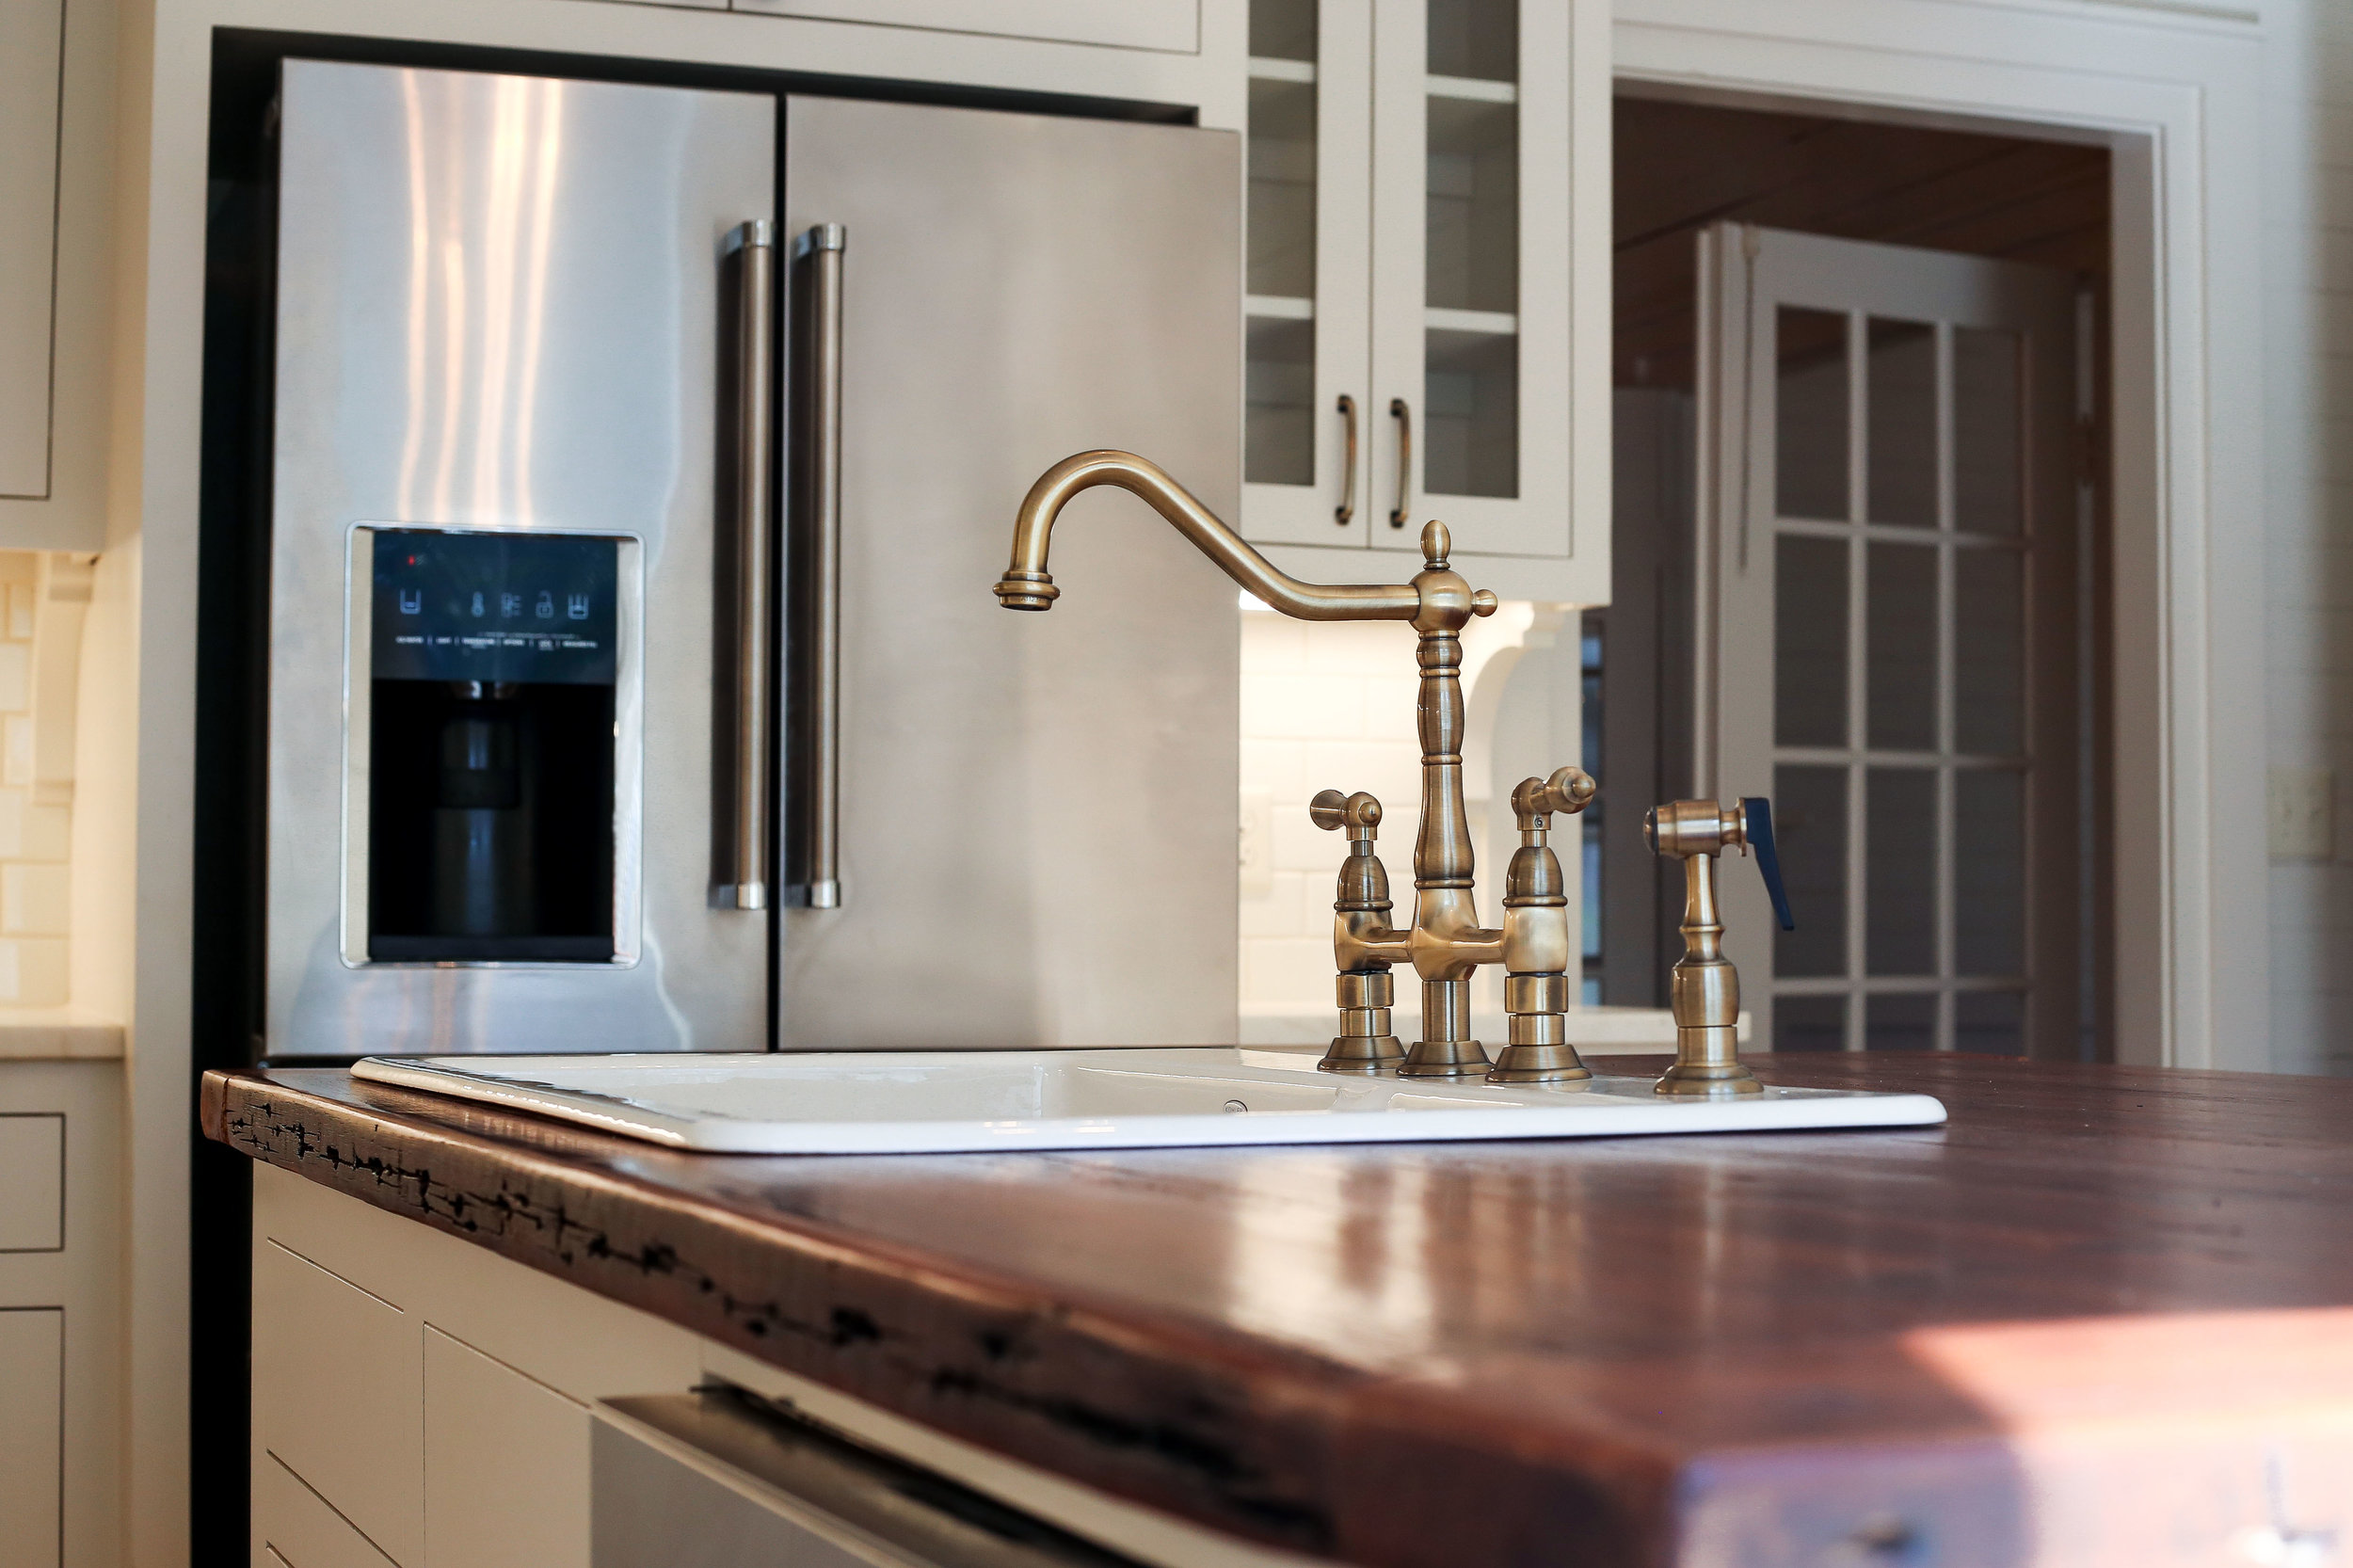 shealy kitchen faucet CL.JPG